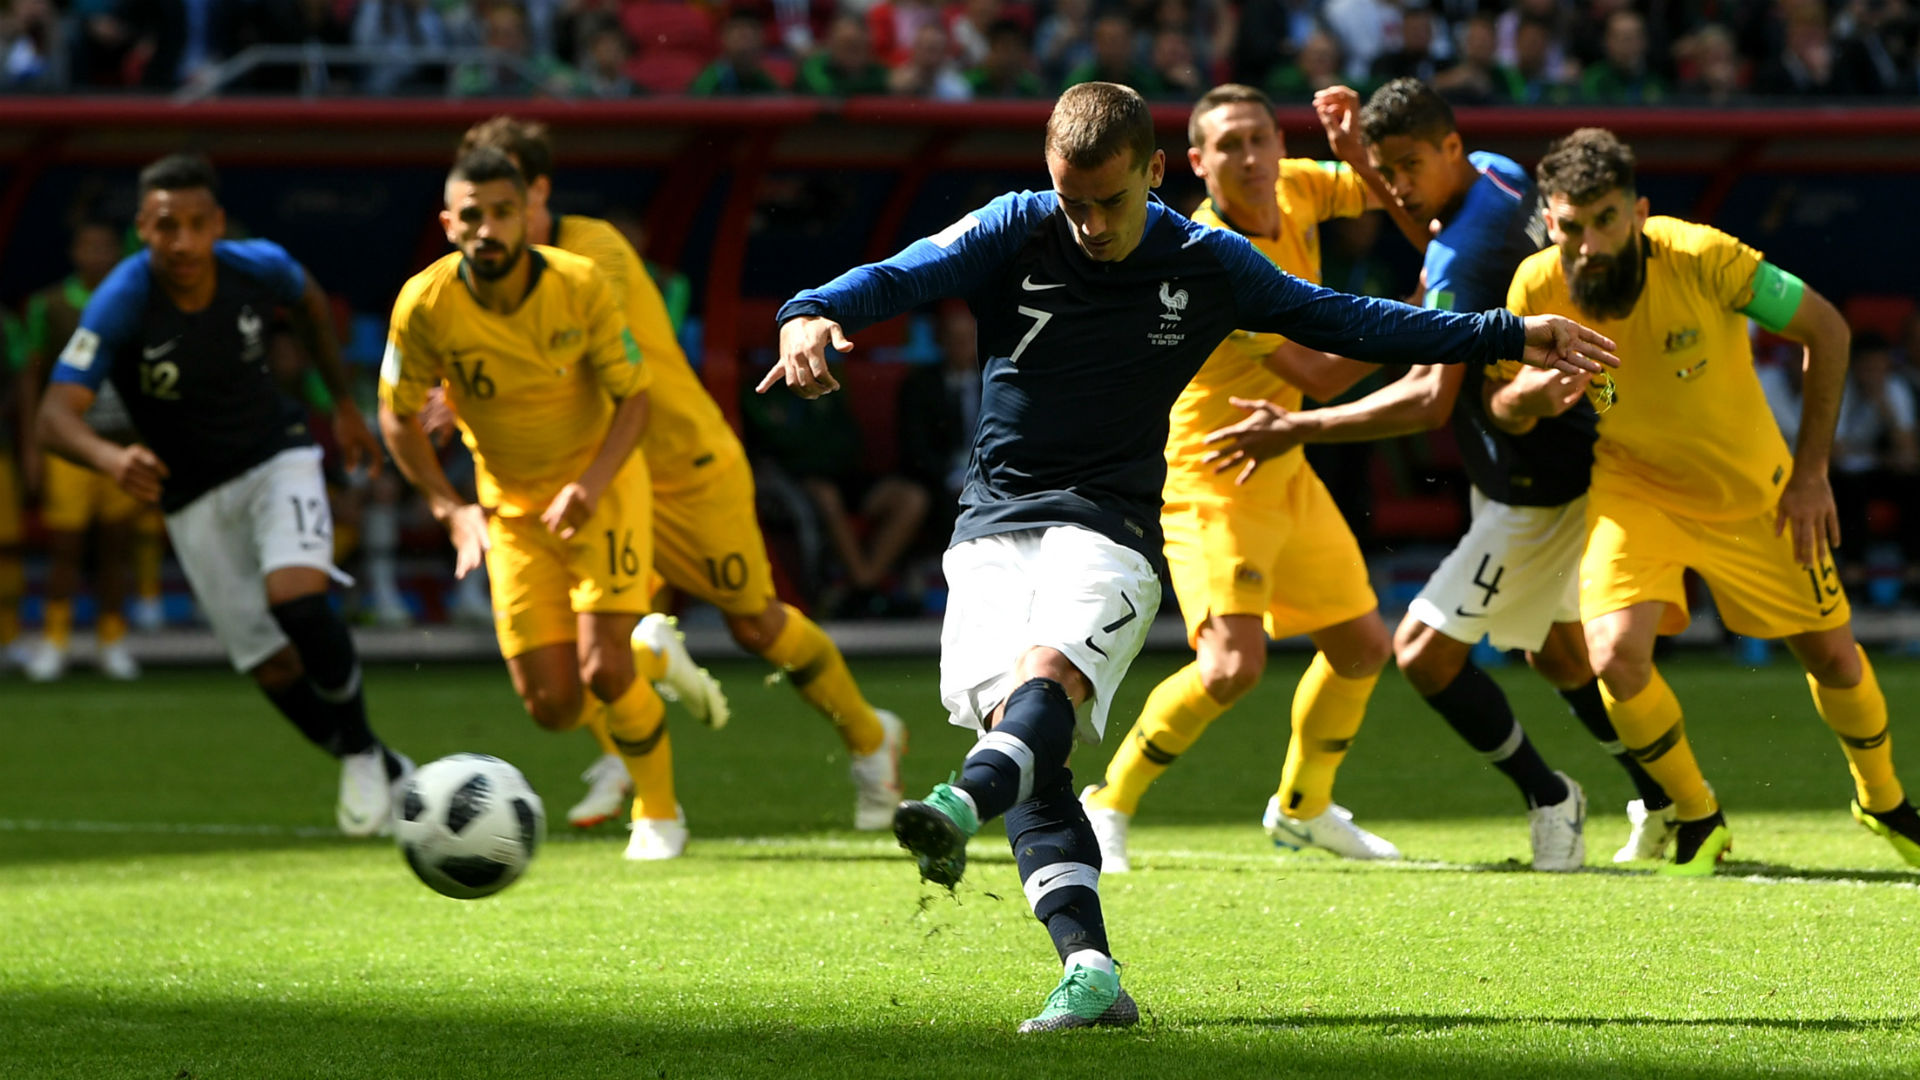 Socceroos' France clash a ratings victor for SBS